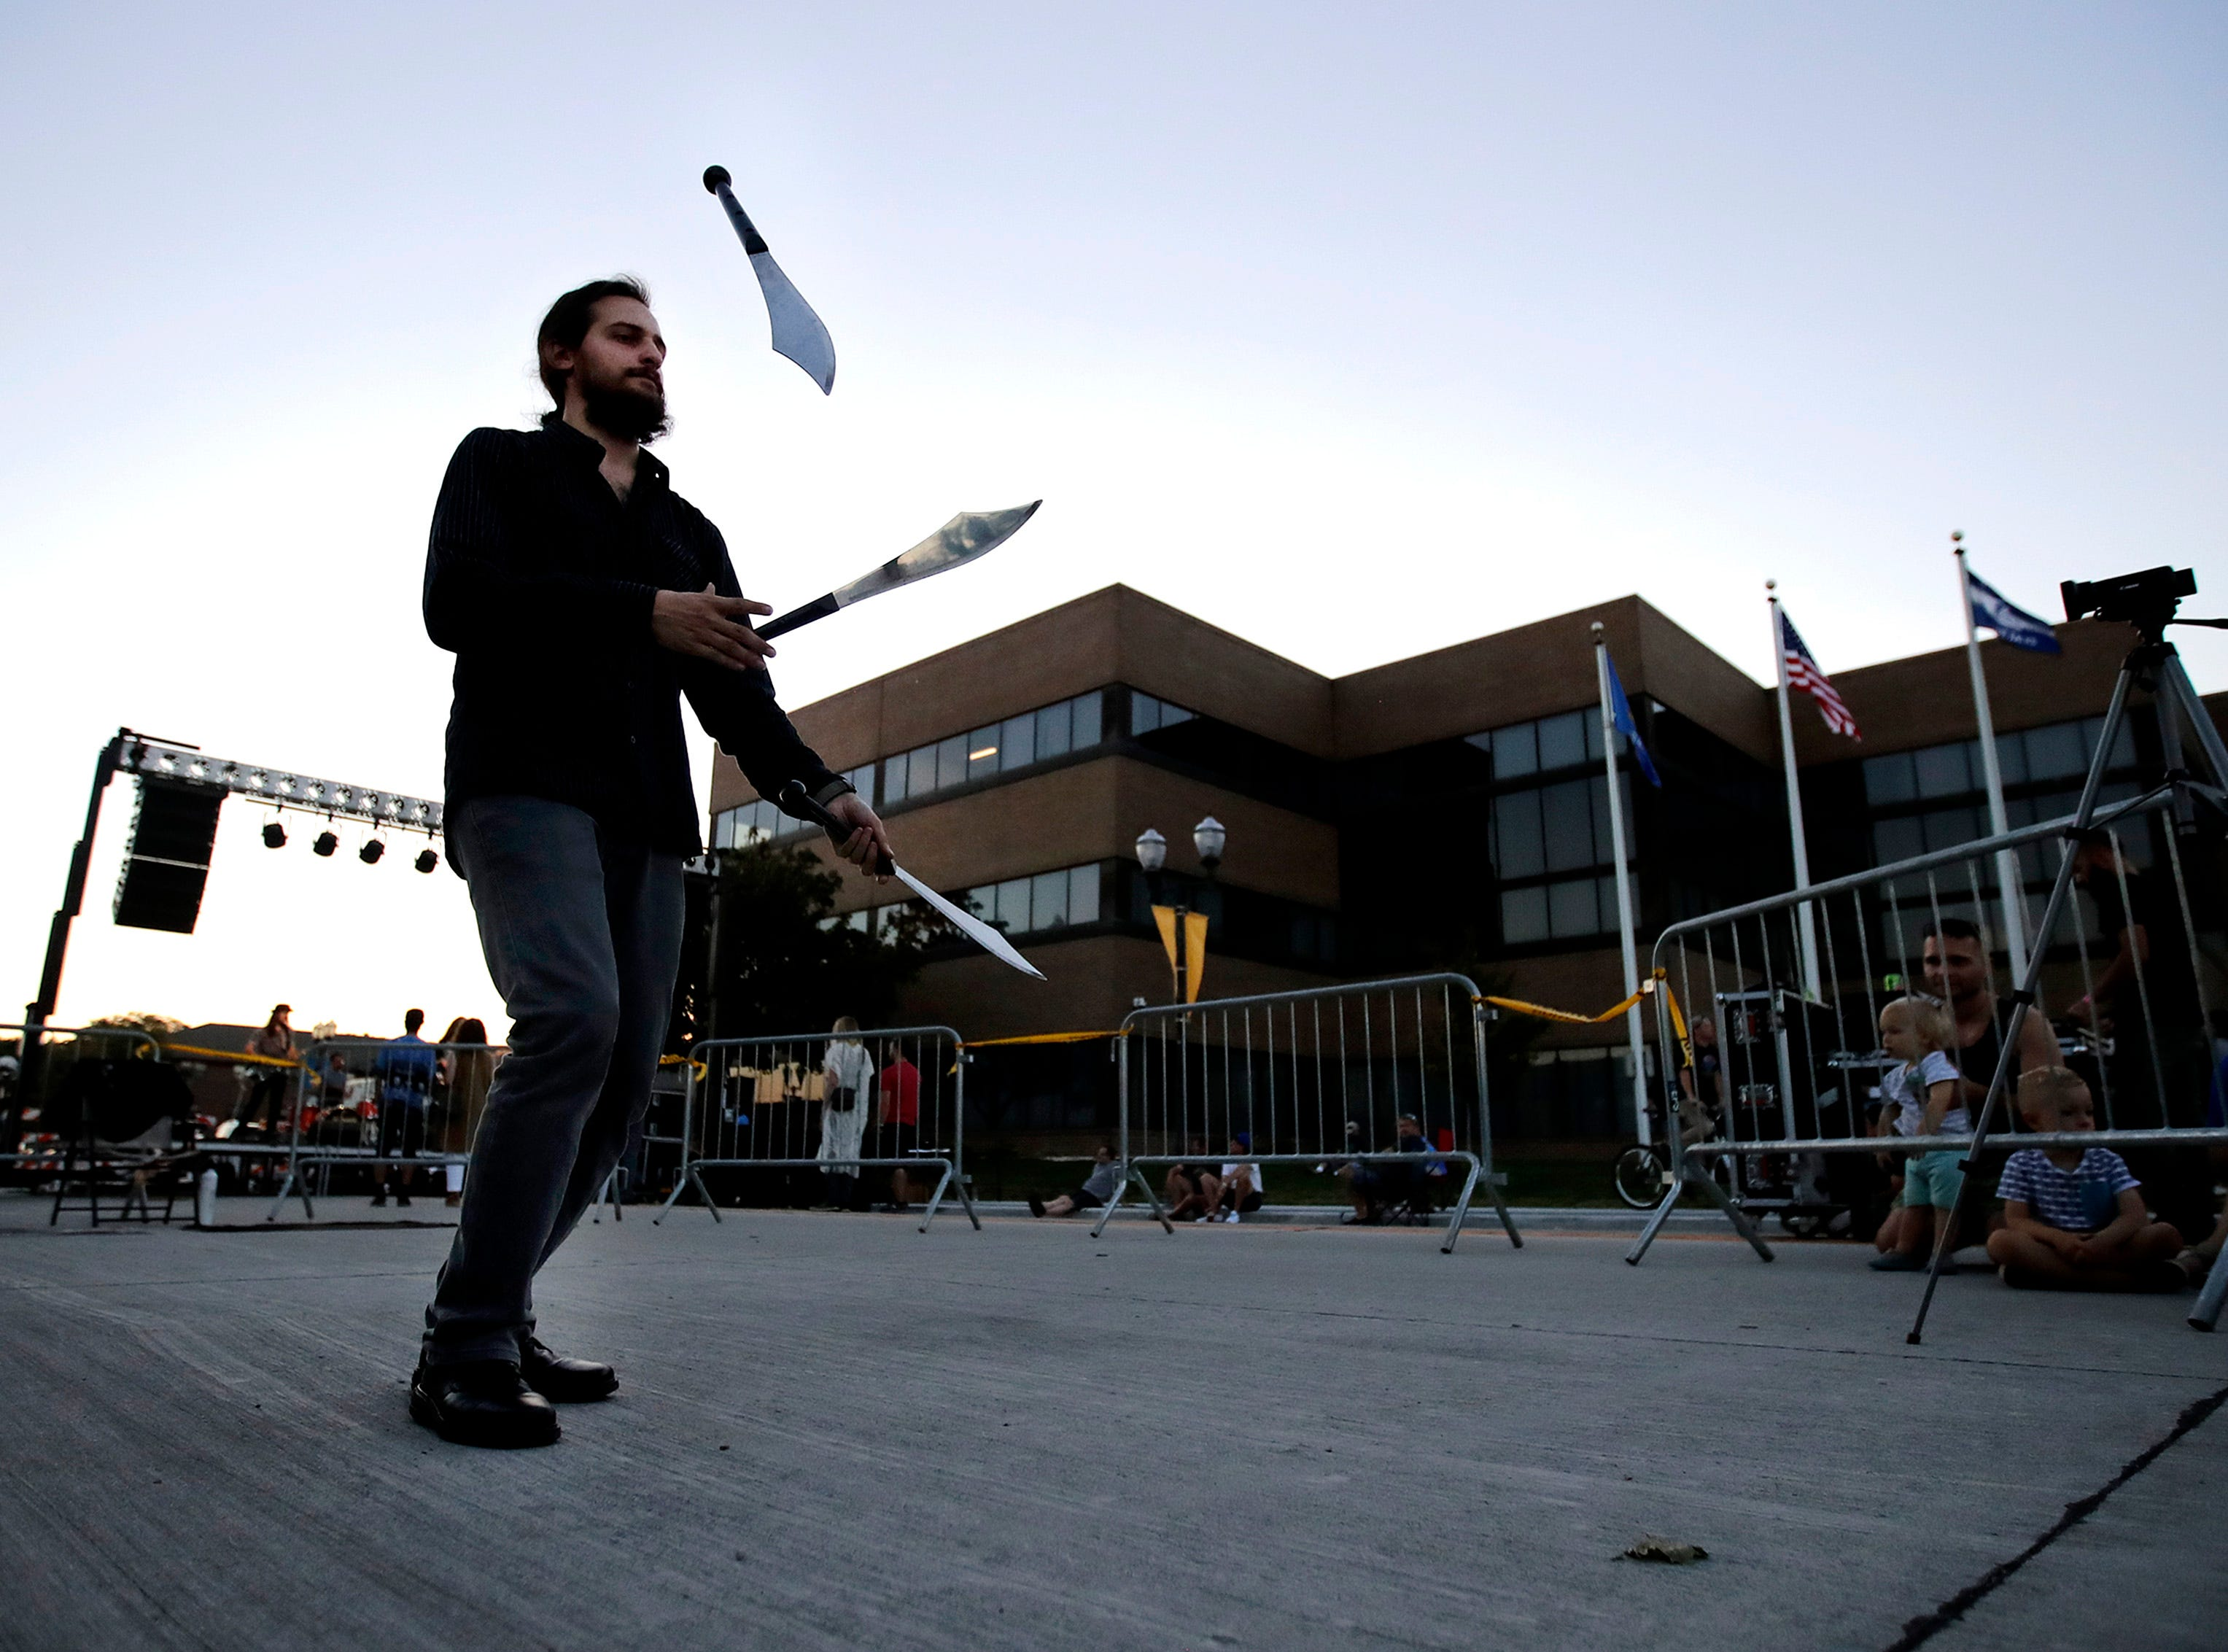 Kyle Lichtenberg, with the Fox Valley Fire and Flow Collective, juggles knives during Bazaar After Dark Wednesday, Sept. 12, 2018, in Menasha, Wis.Danny Damiani/USA TODAY NETWORK-Wisconsin